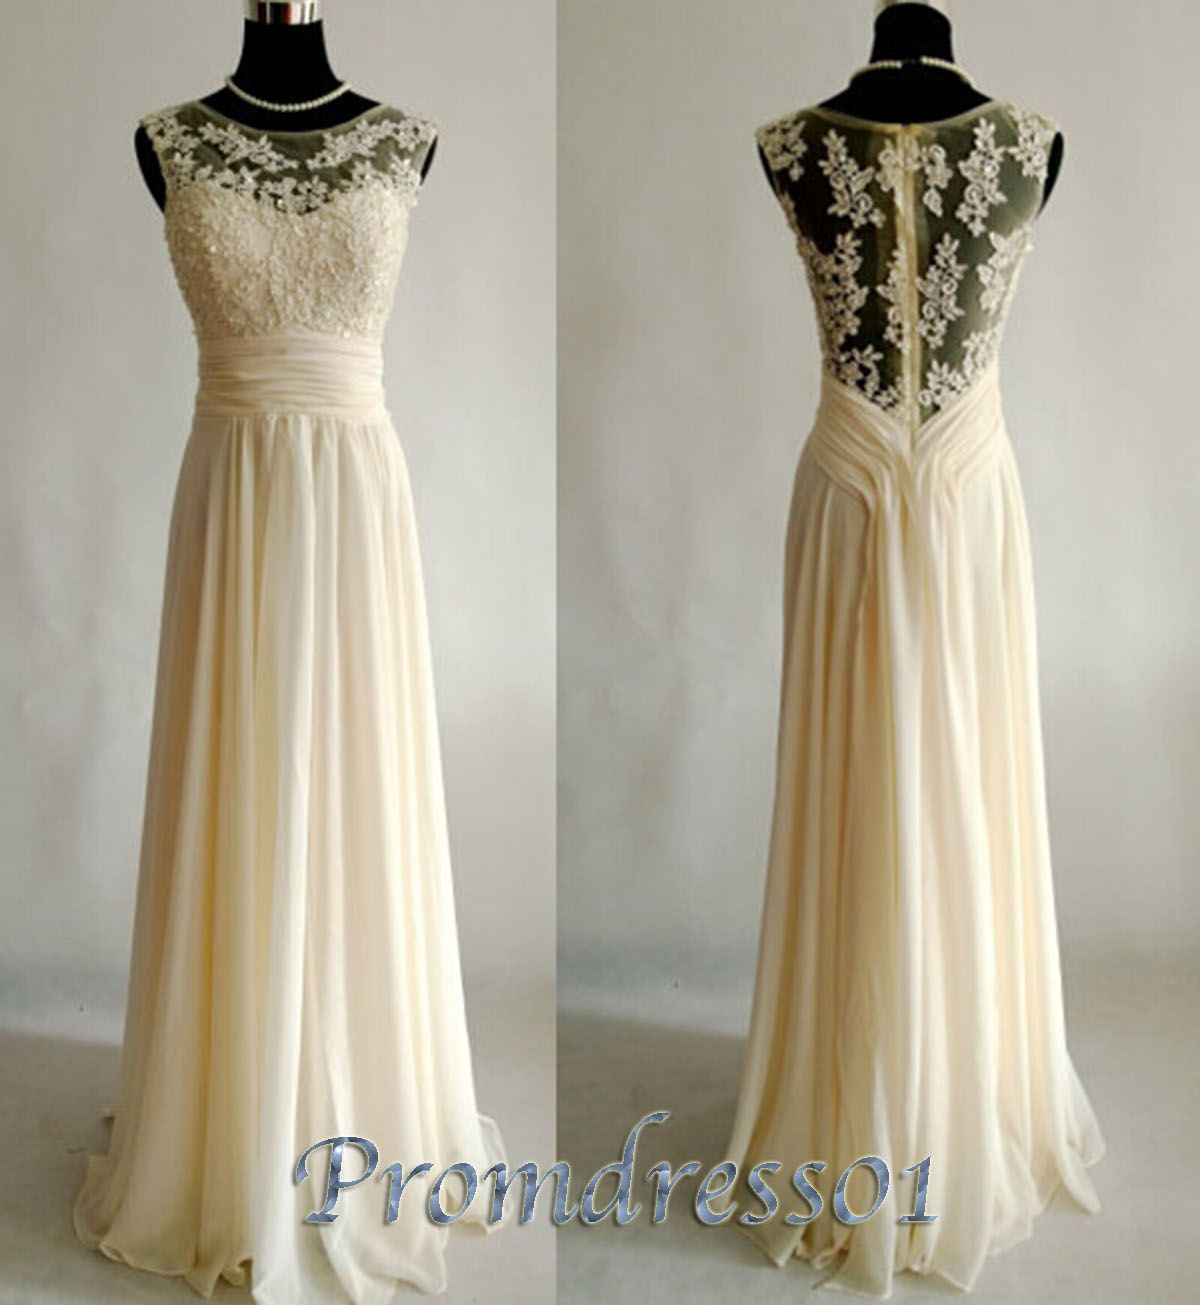 2015 creamy lace chiffon prom dress DRESS